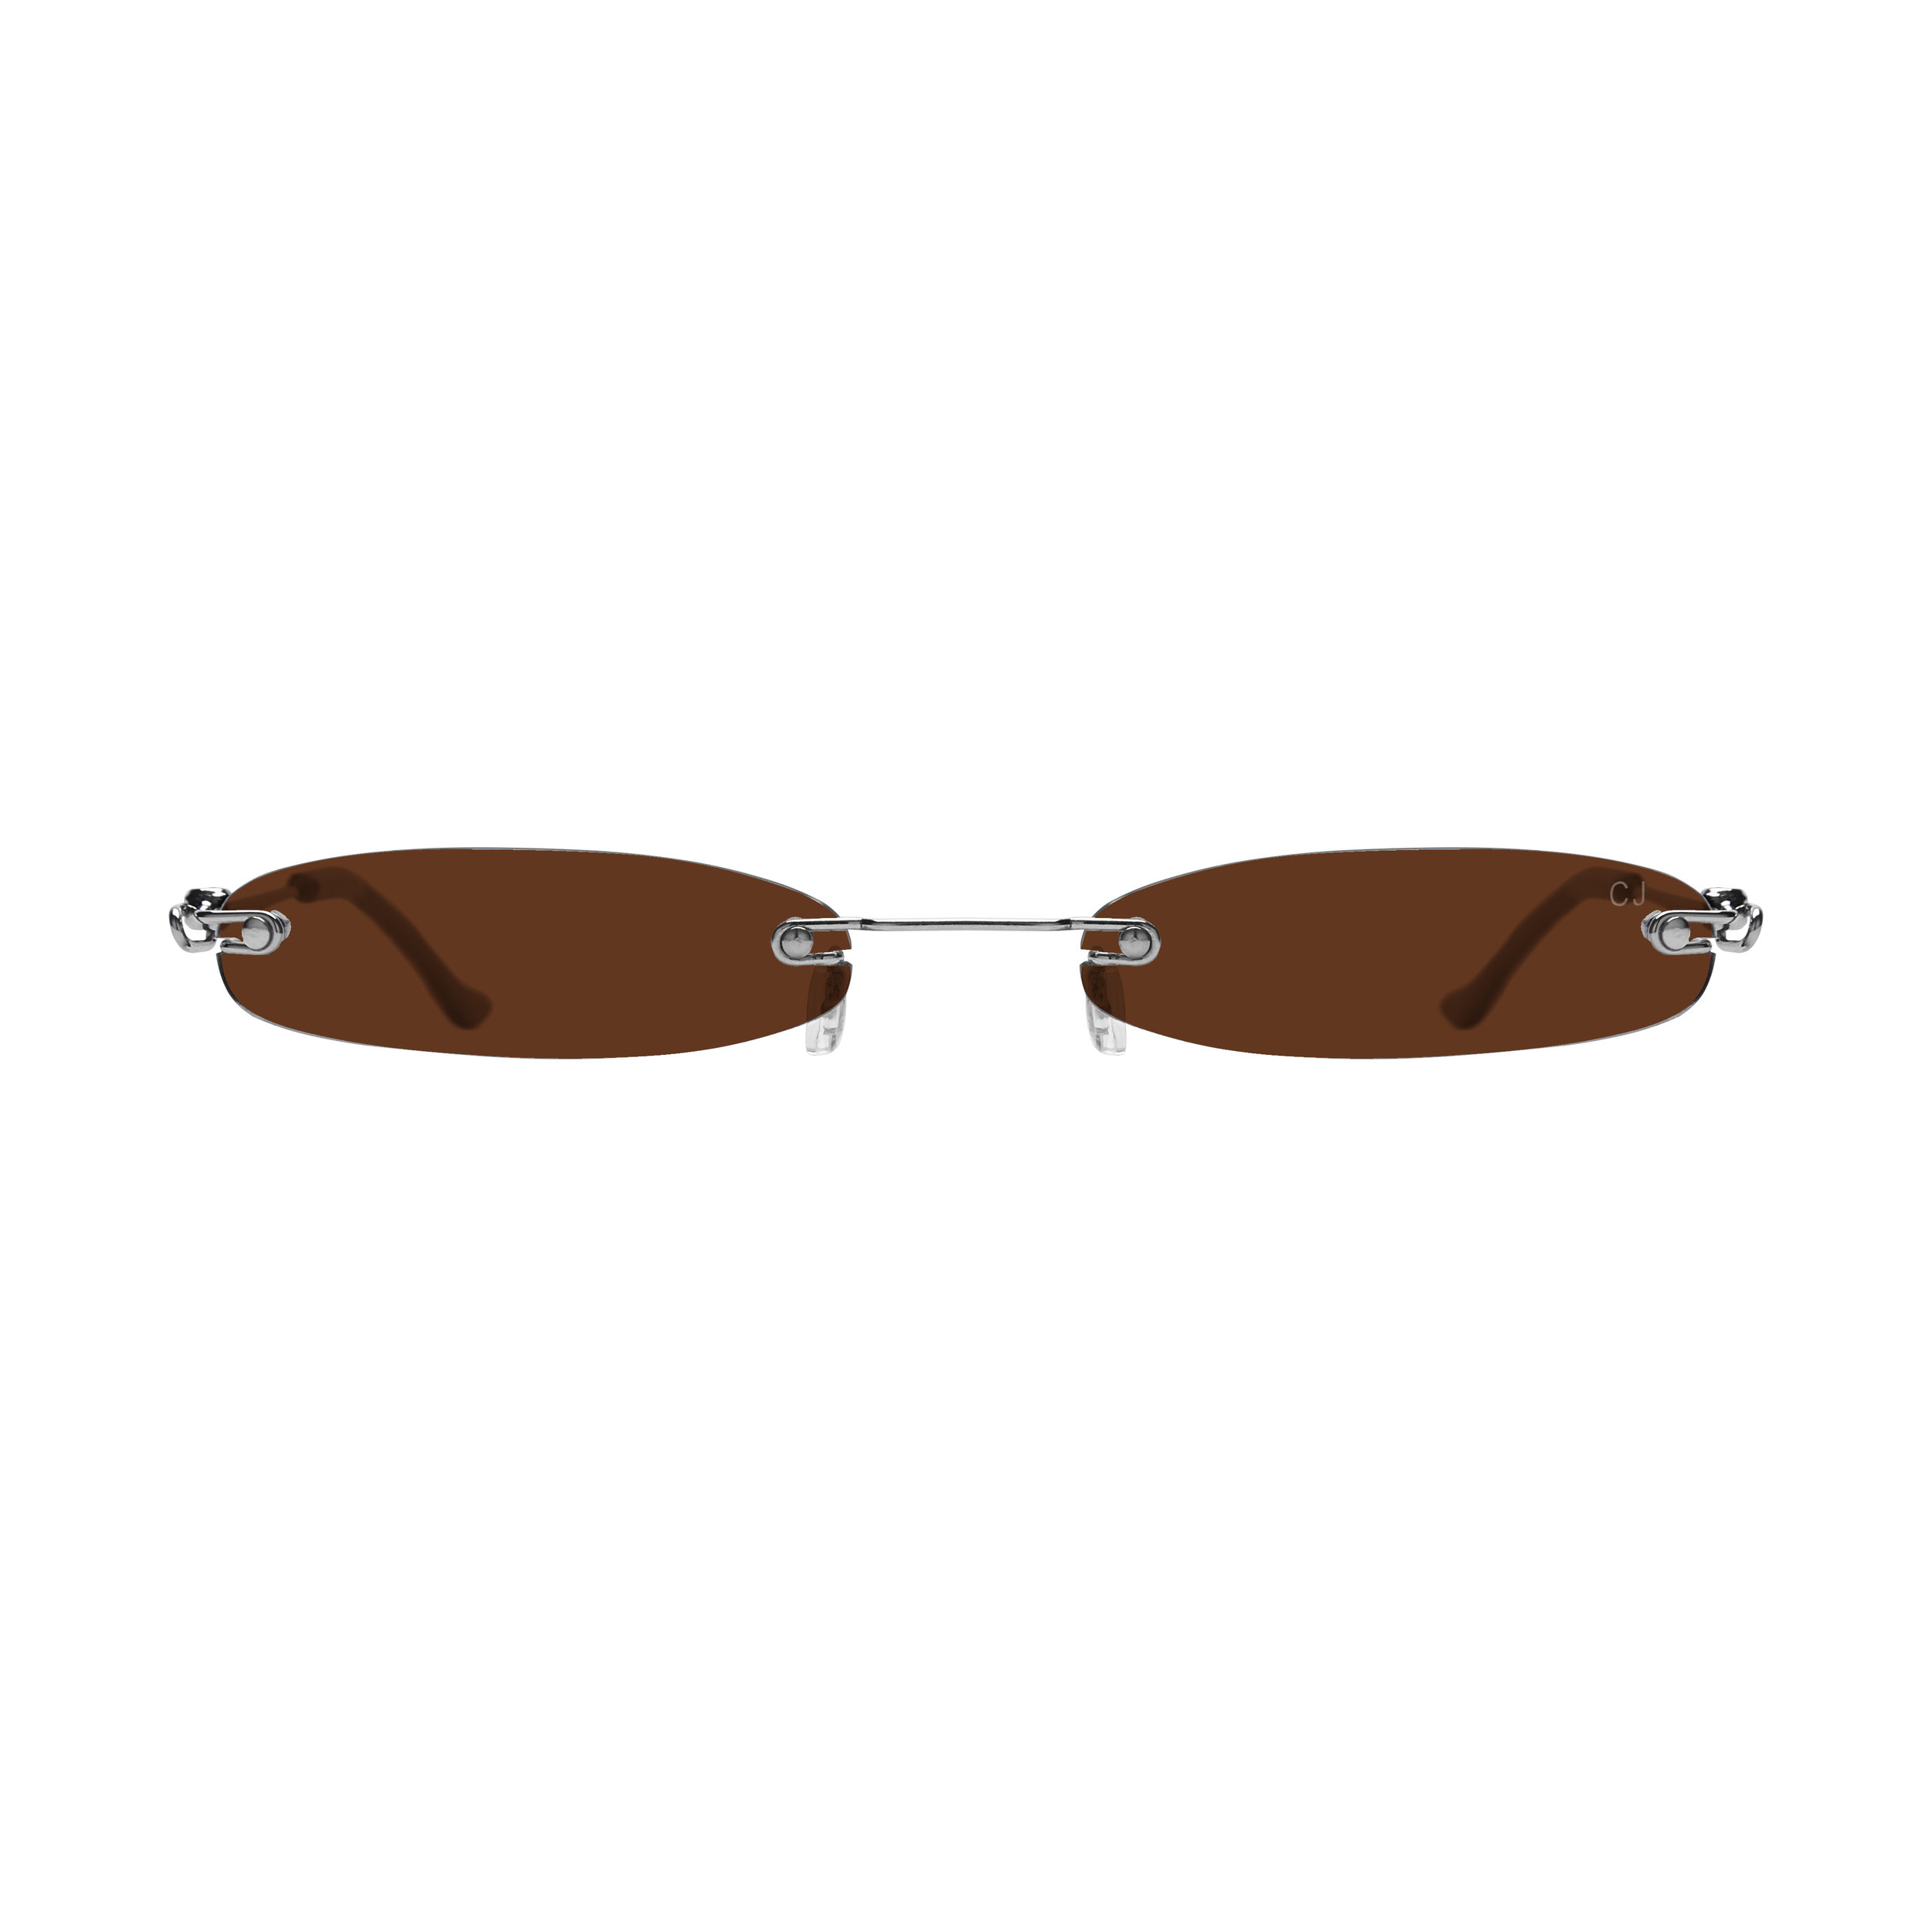 ChristianahJones_Glasses_Brown_01.jpg